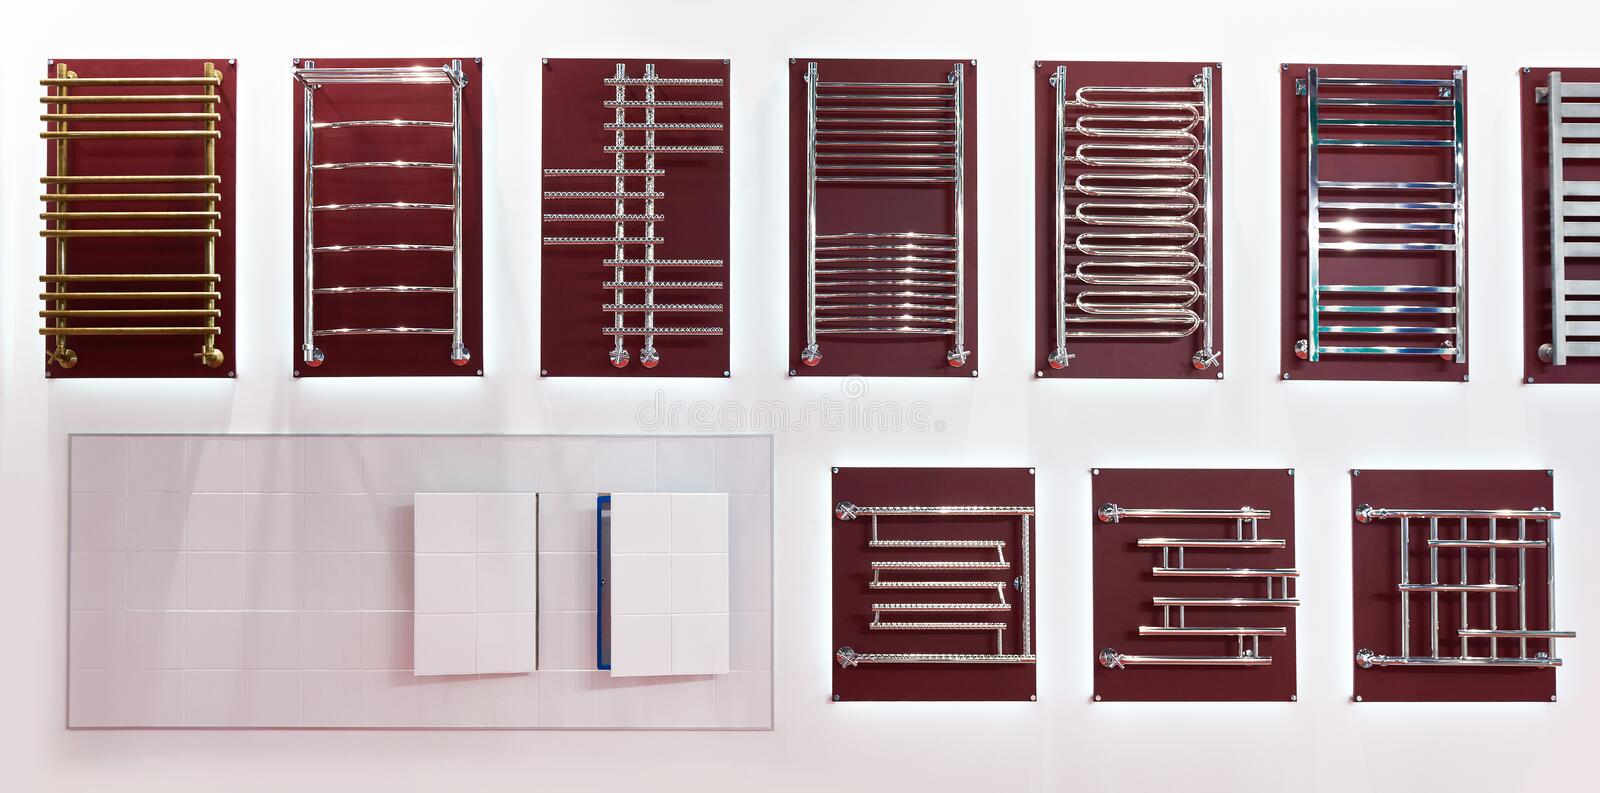 Towel rails for bathroom in shop. Towel rails for the bathroom in the shop window stock images